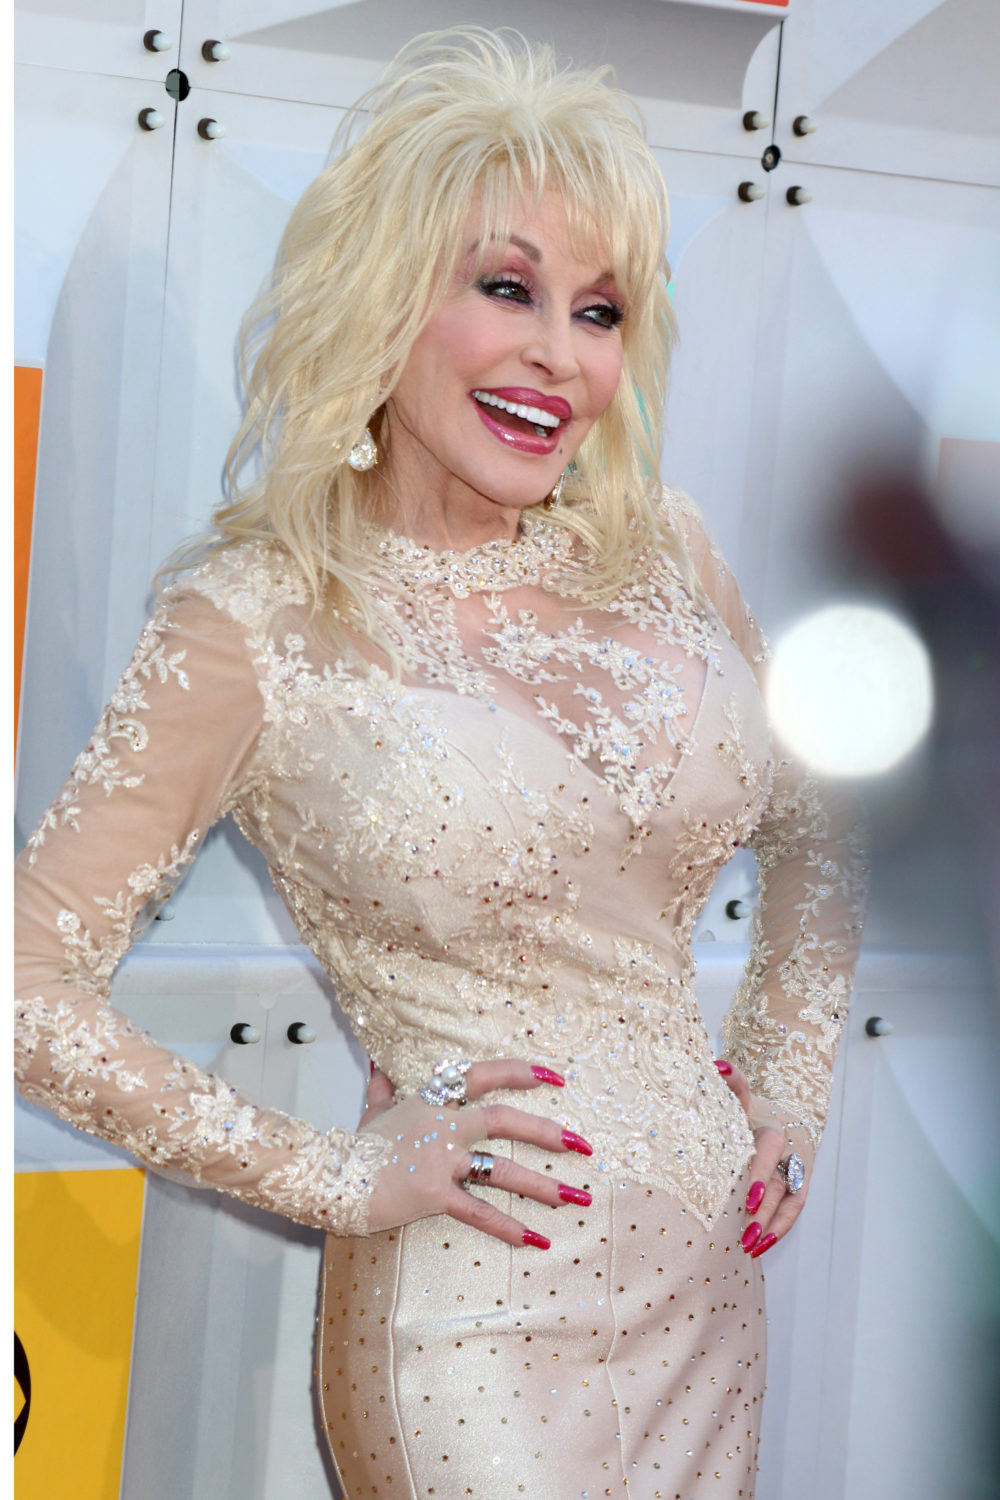 Dolly Parton Takes Off Wig And Reveals Natural Hair For The First Time